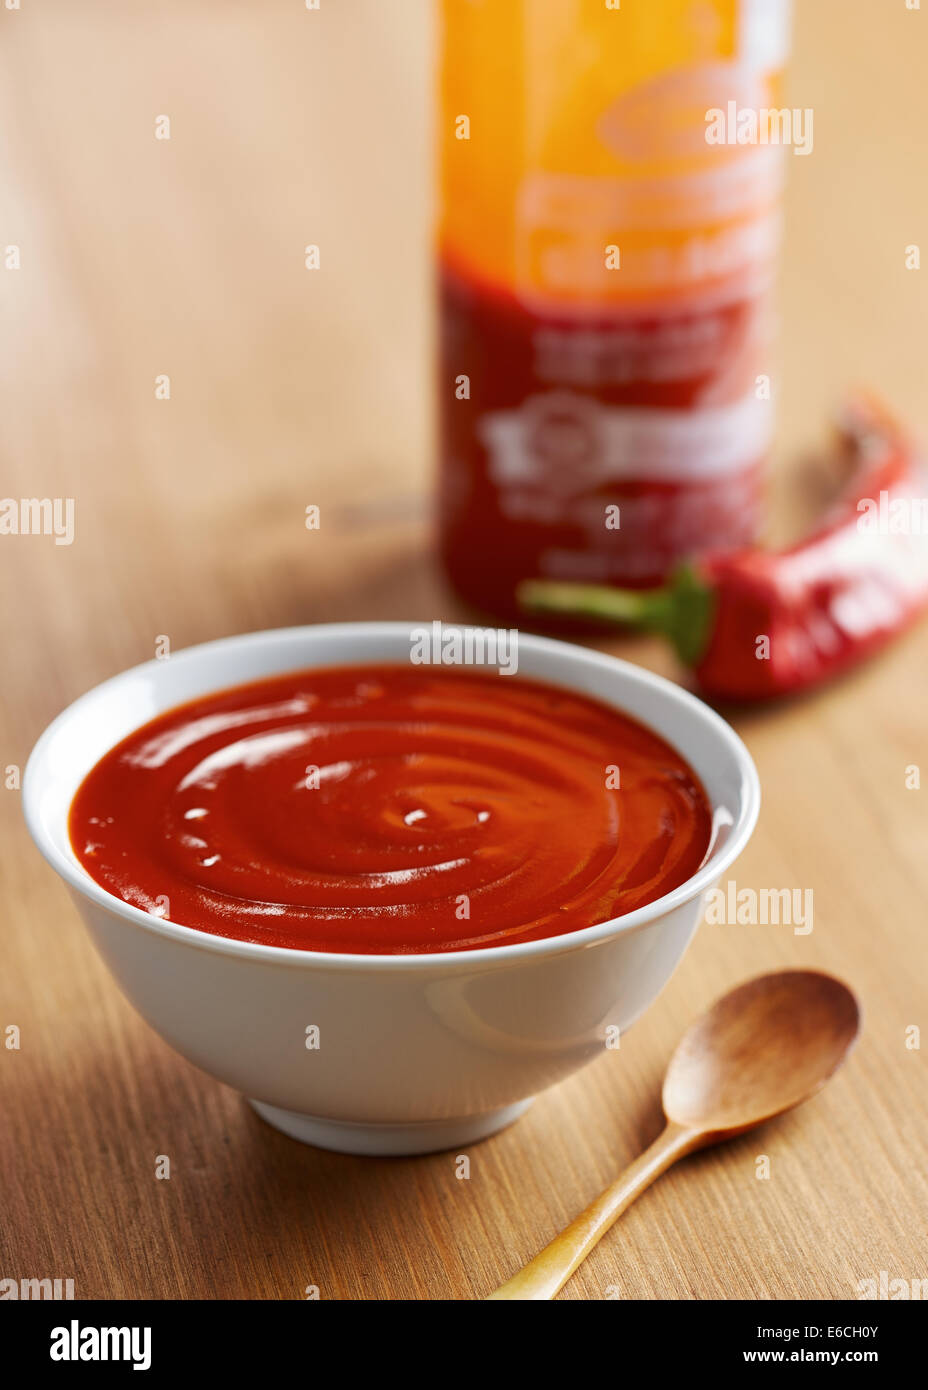 Bowl and bottle of sriracha sauce - Stock Image